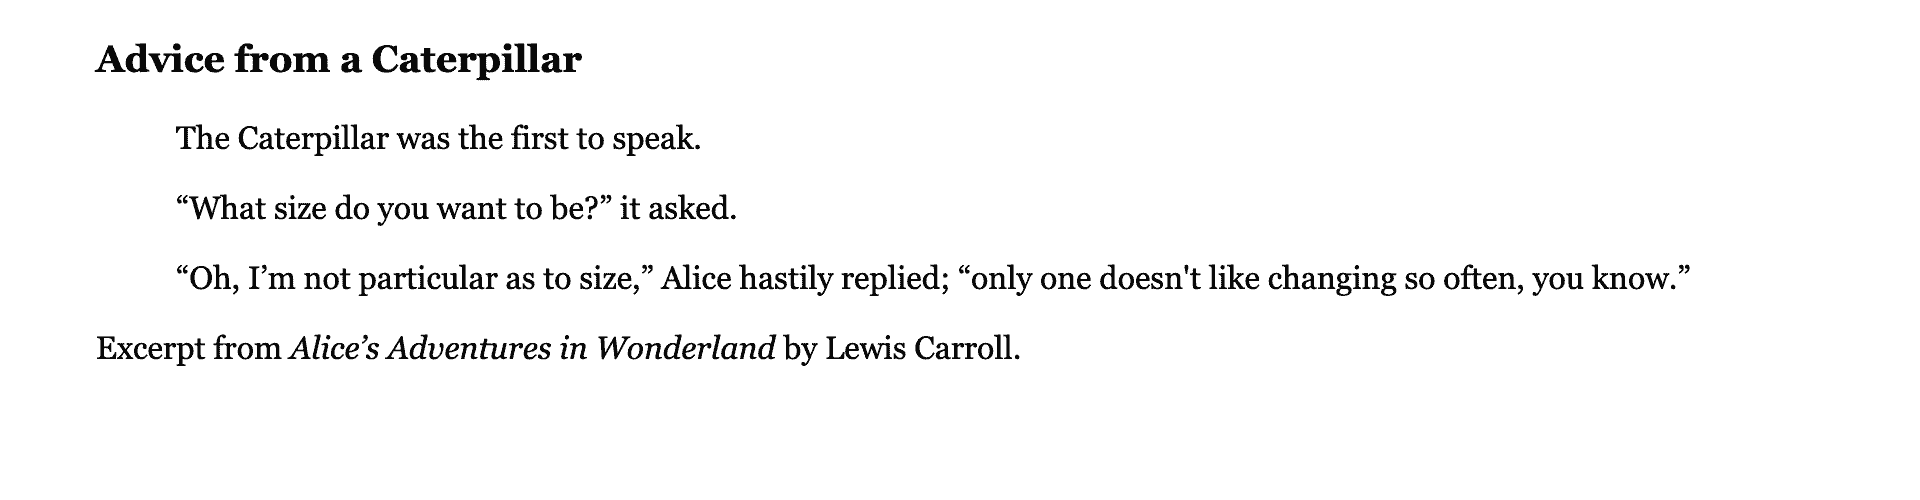 Text selection in a default serif font in black with a larger, bold header, an indented quotation, and citation of the quote.